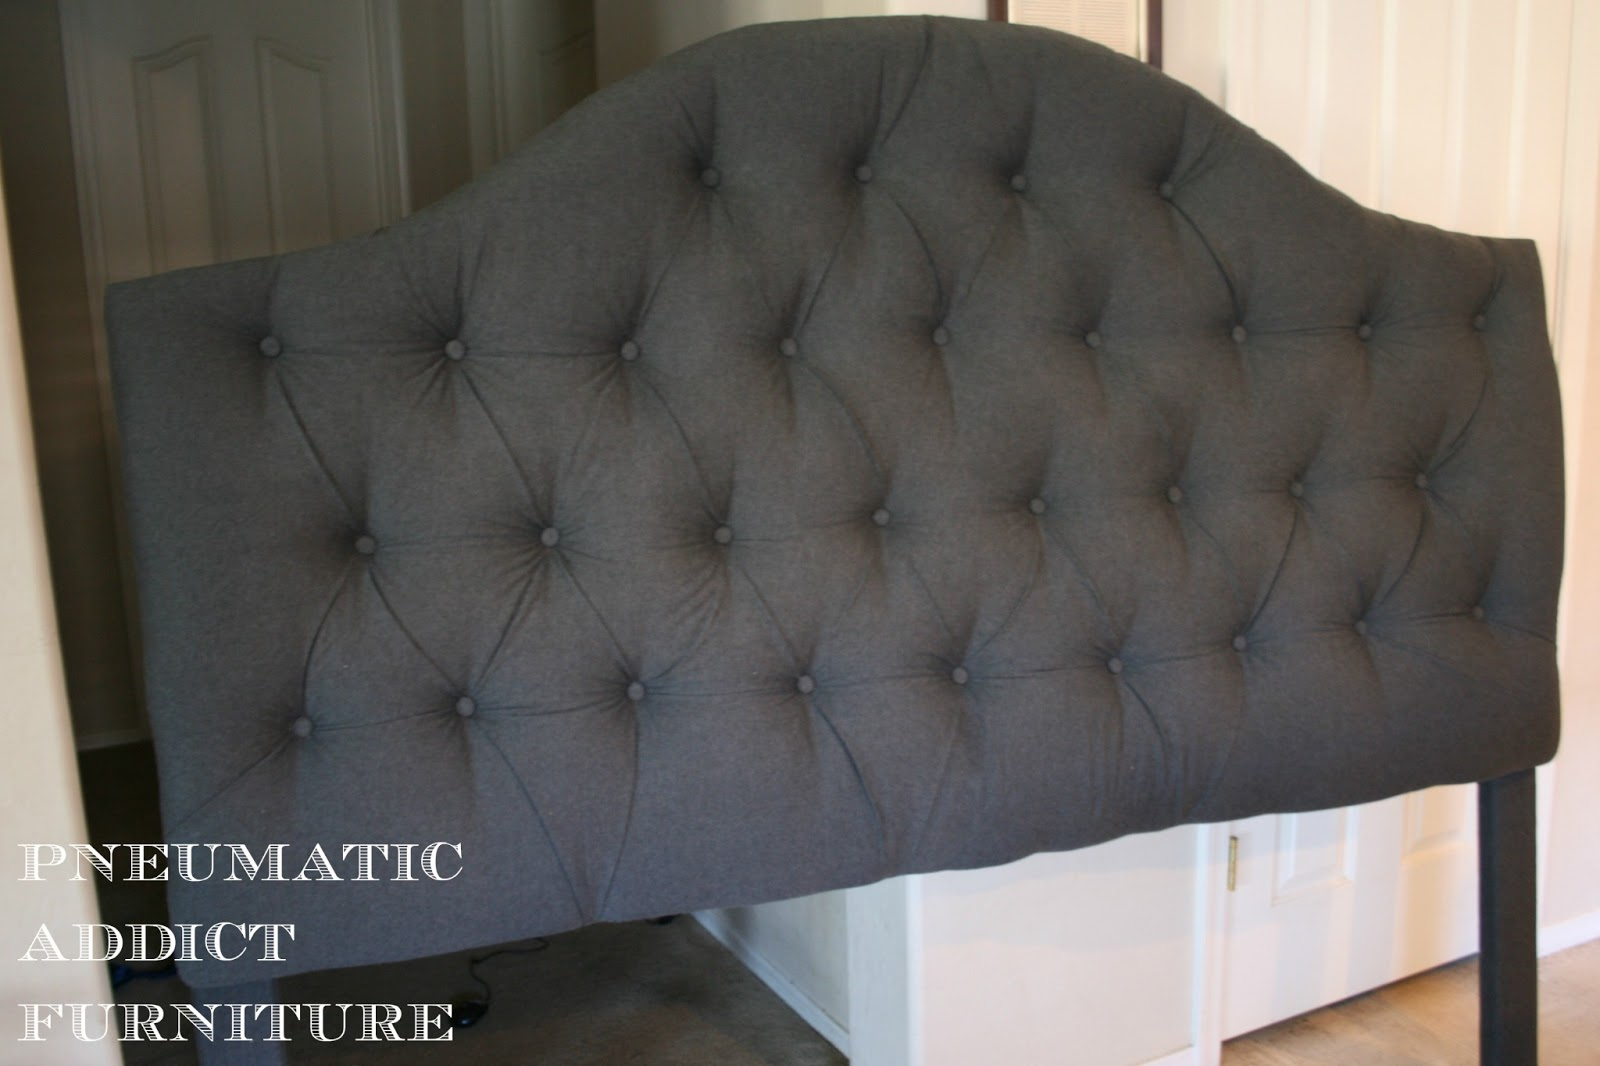 Cover Headboard With Fabric Pneumatic Addict Tufting A Headboard The Easy Way